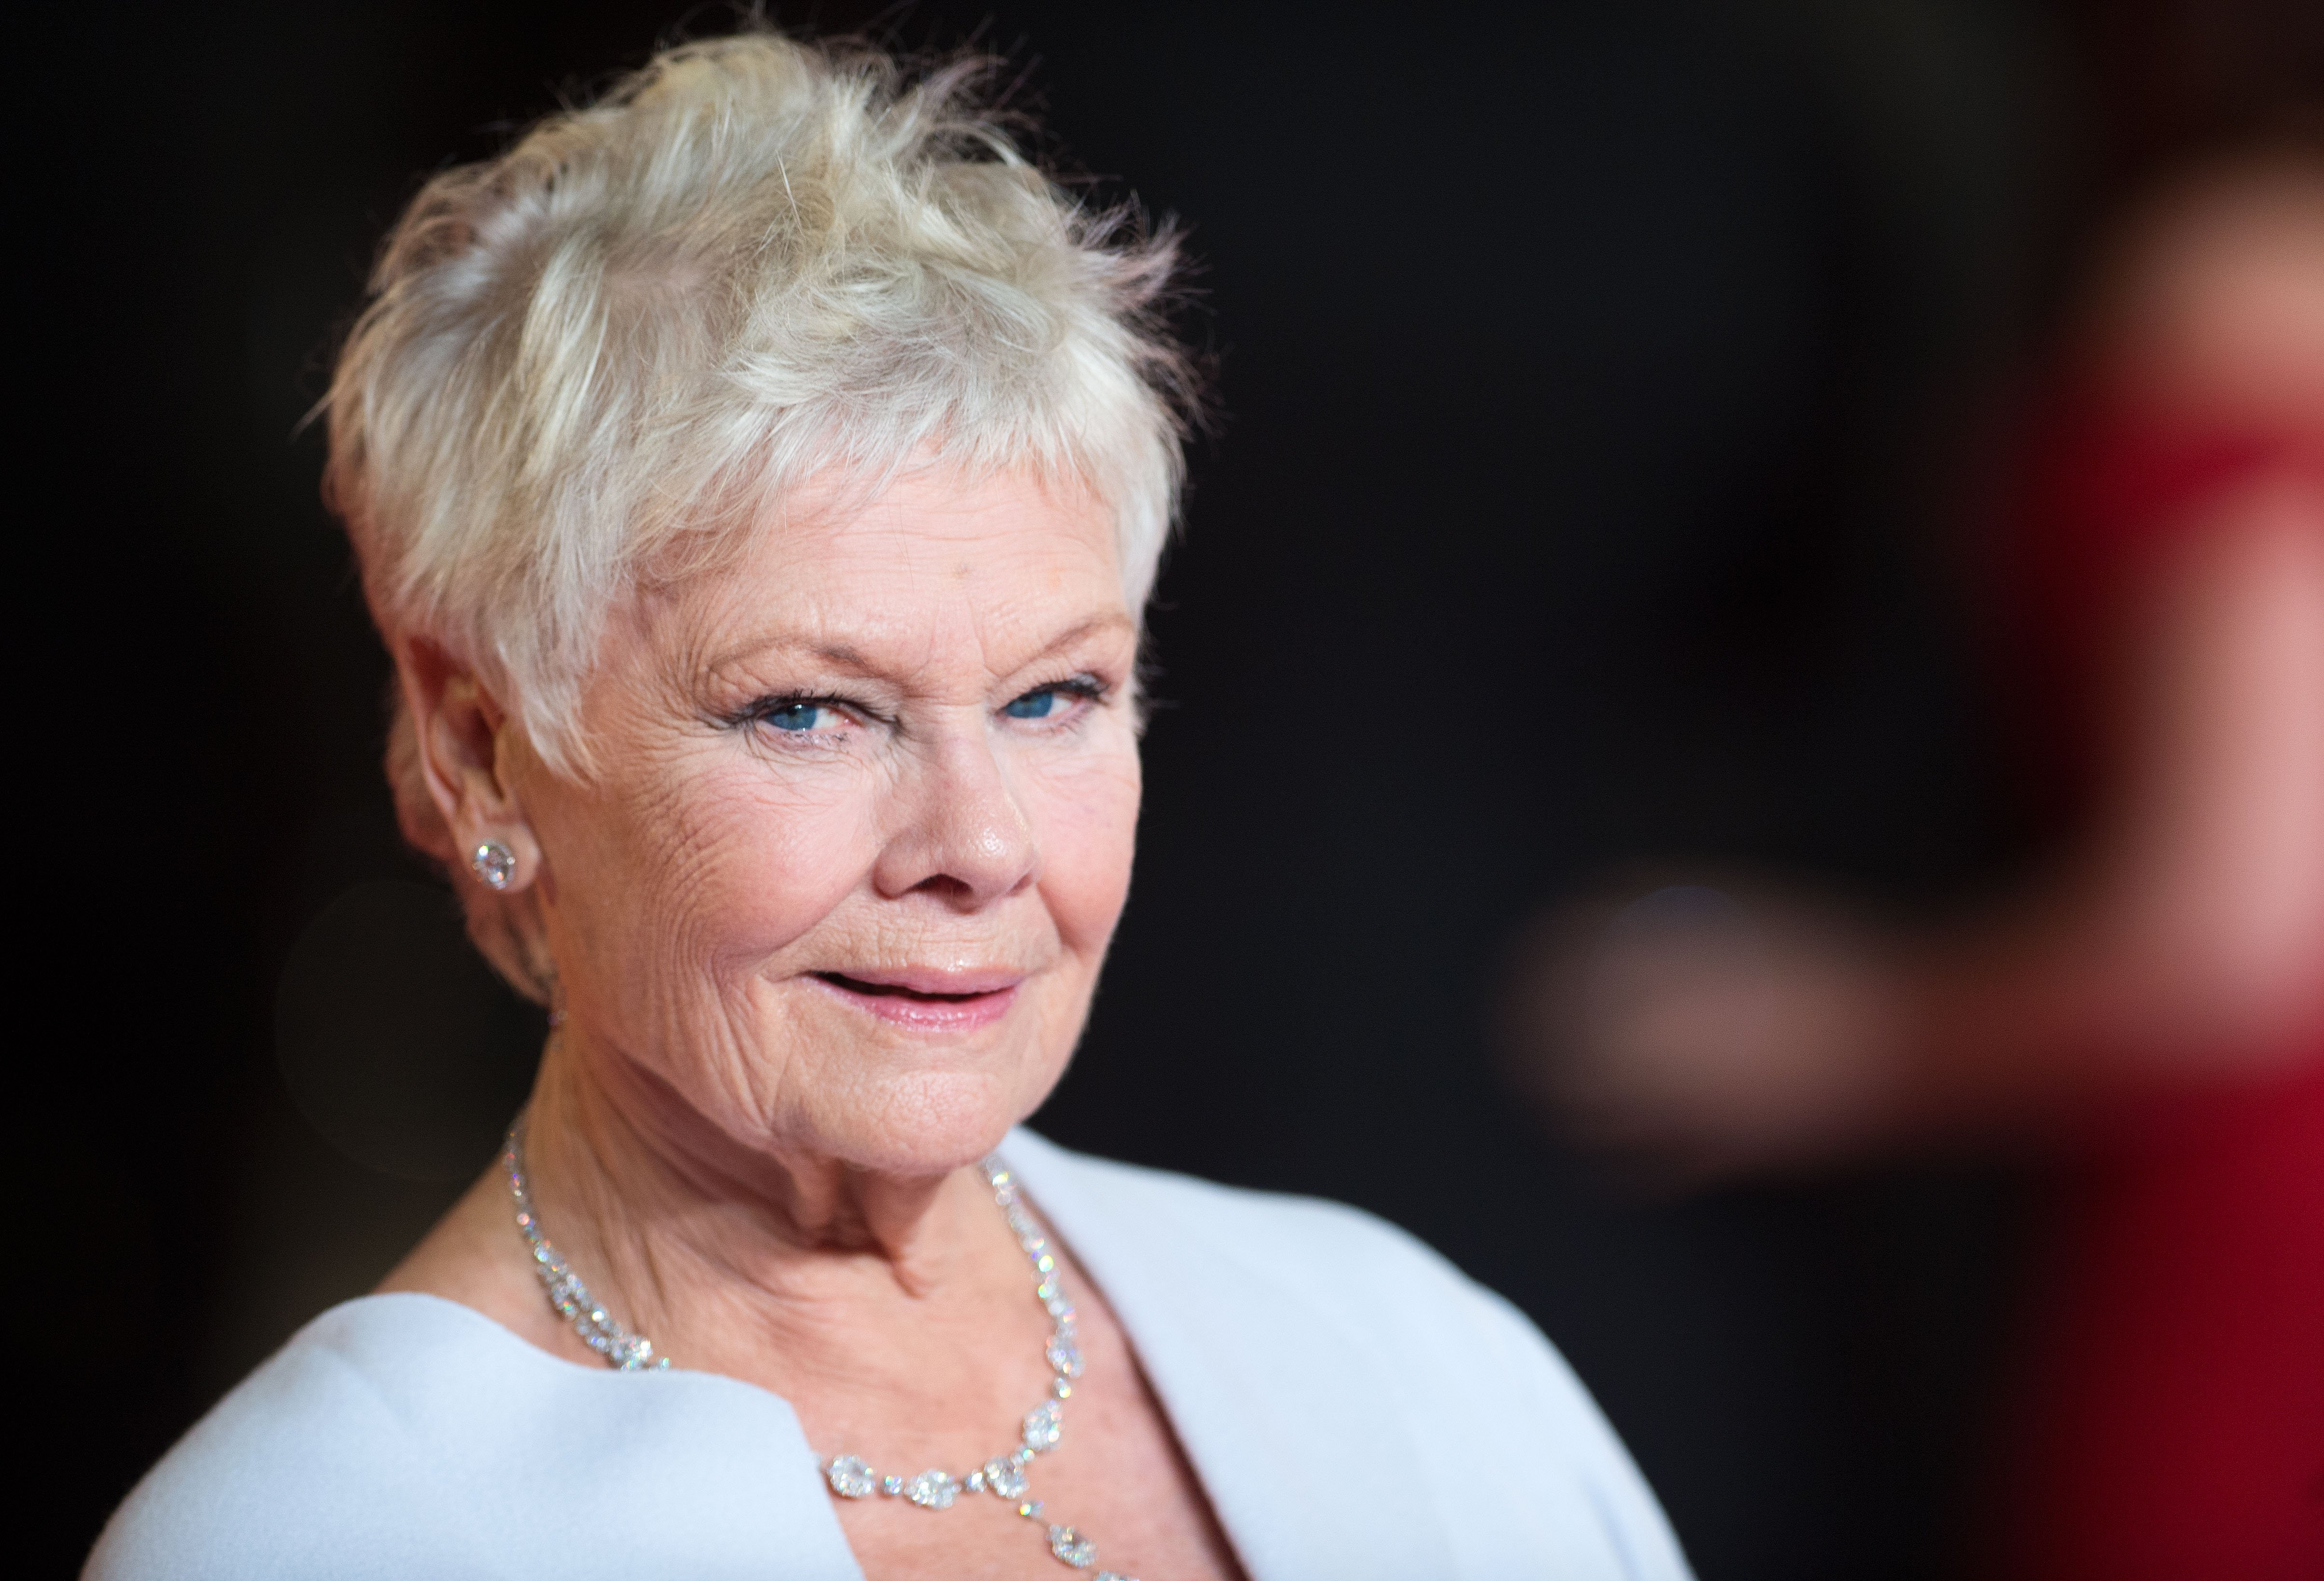 Dame Judi Dench attends the Royal World Premiere of 'Skyfall' at the Royal Albert Hall on October 23, 2012 in London, England | Photo: Getty Images